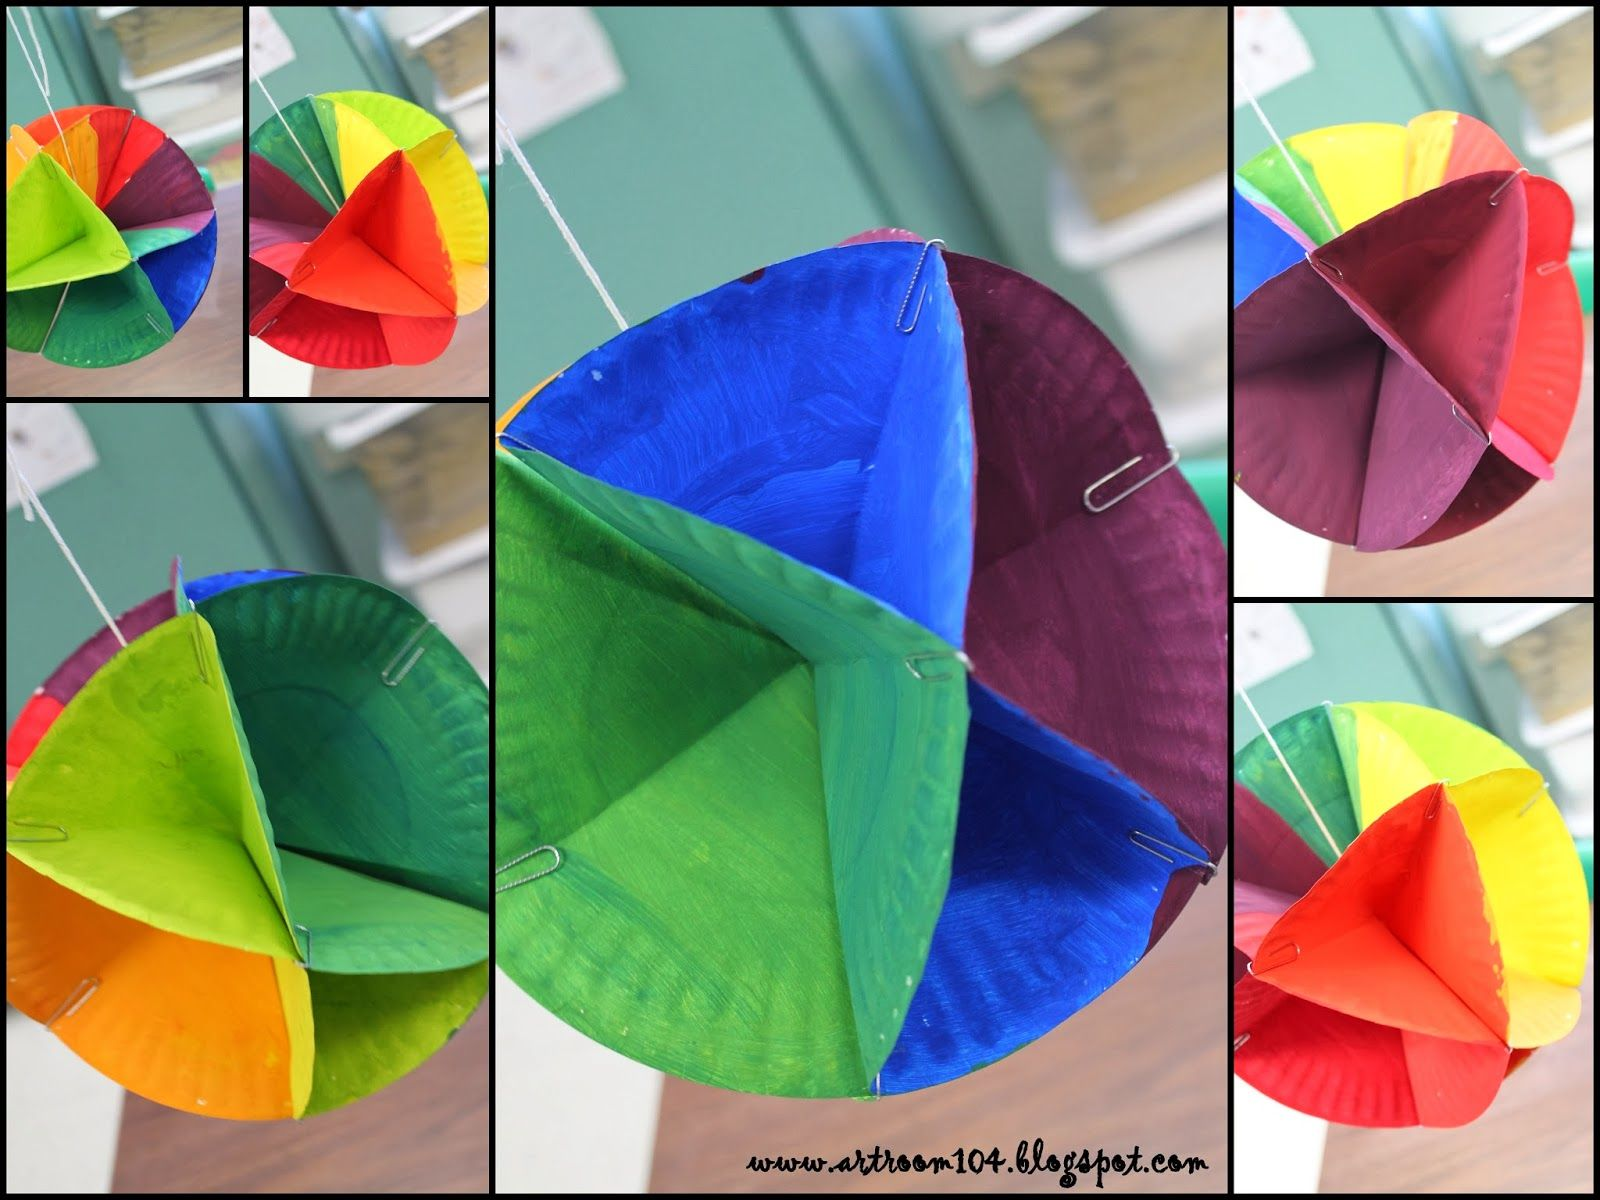 Color wheel art projects for kids - Art Room Grade Color Wheel Tutorial Nice Sculptural Color Theory Exercise For My Origami Loving Kids